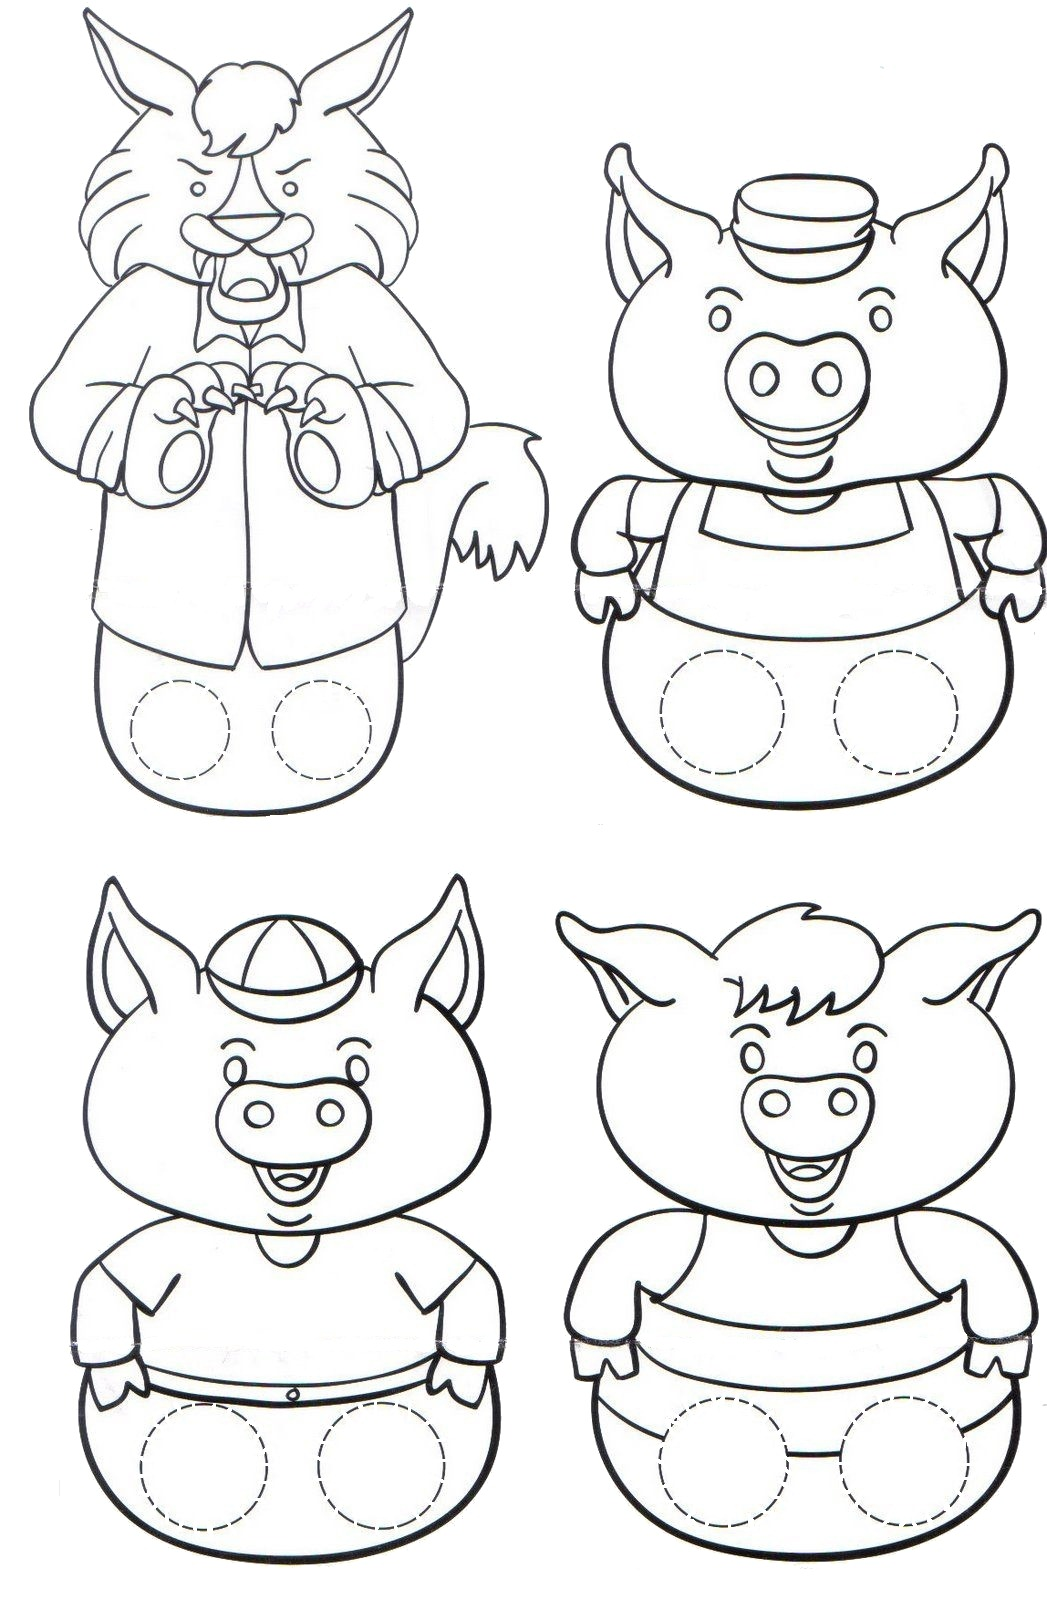 Free 3 little pigs masks coloring pages